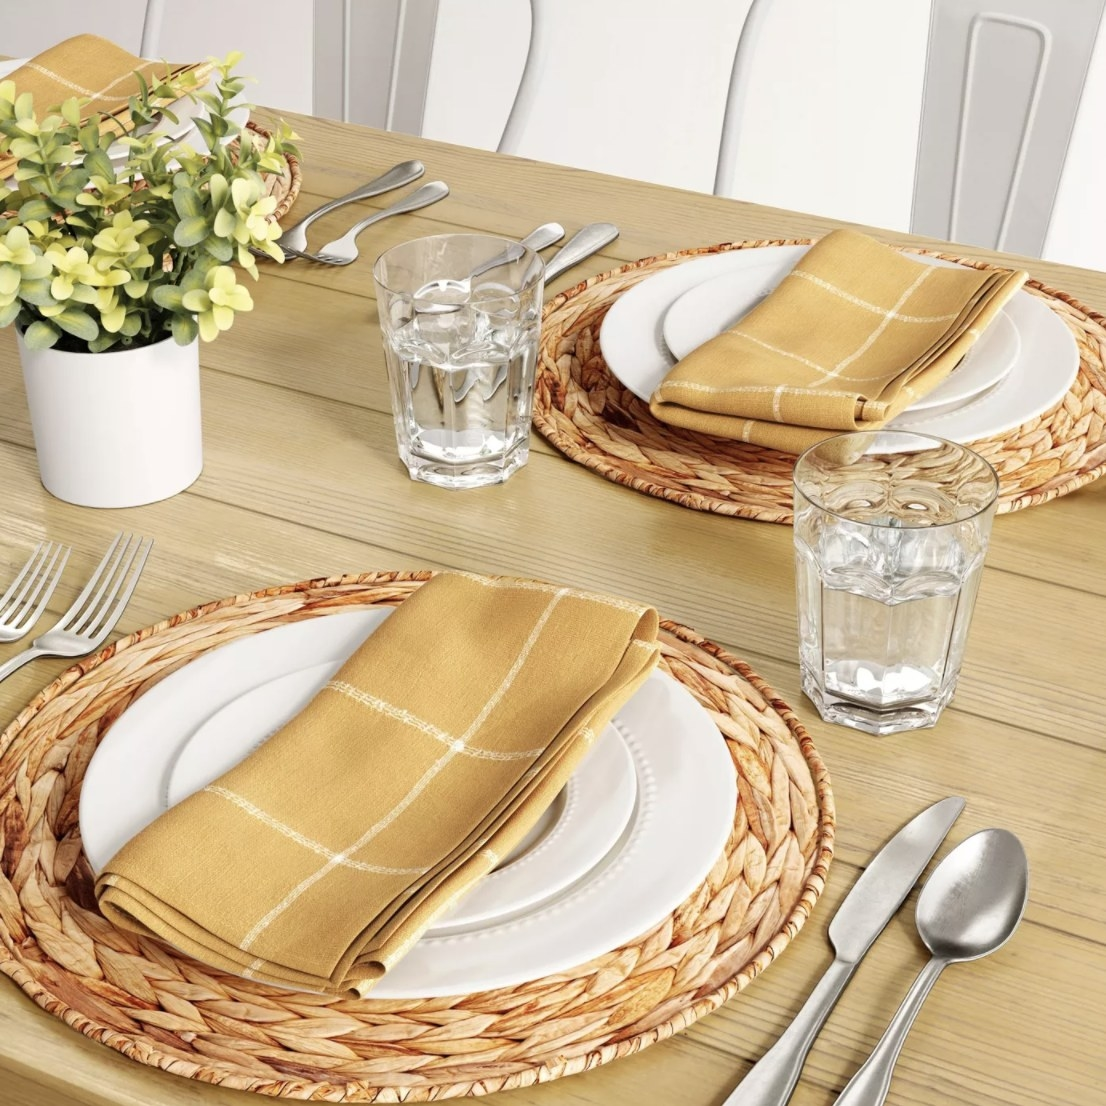 Placemats on table with dinner setting